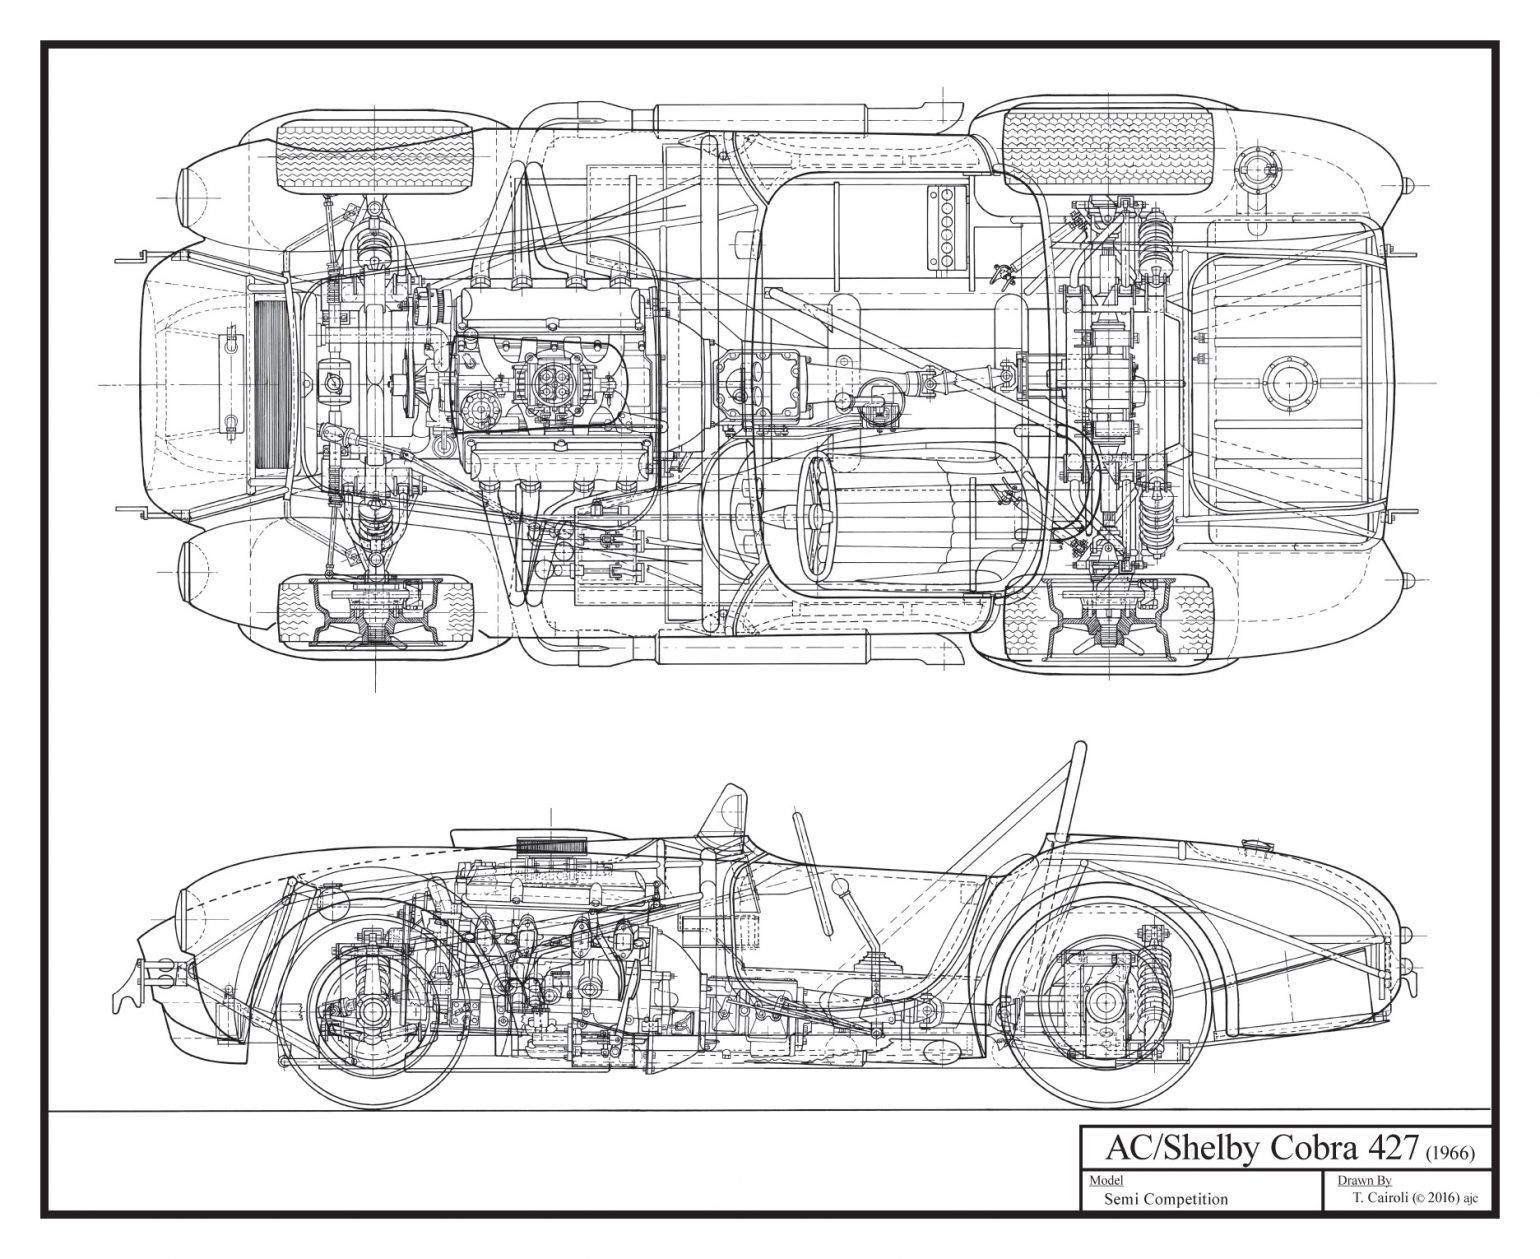 tony cairoli has completed his 1966 shelby cobra 427 schematic    all hand